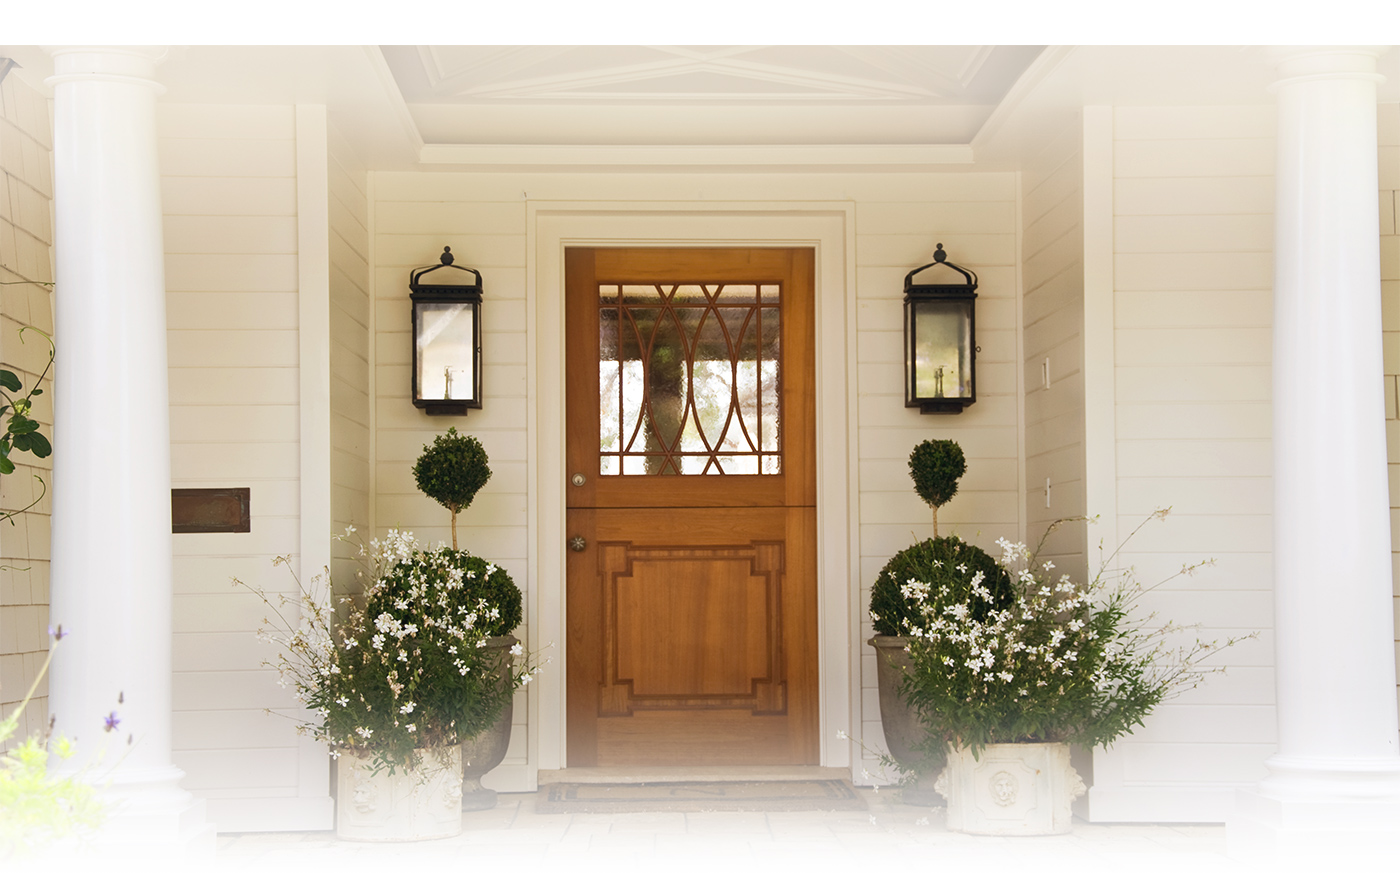 View of front porch and front door with plants on either side of the door.